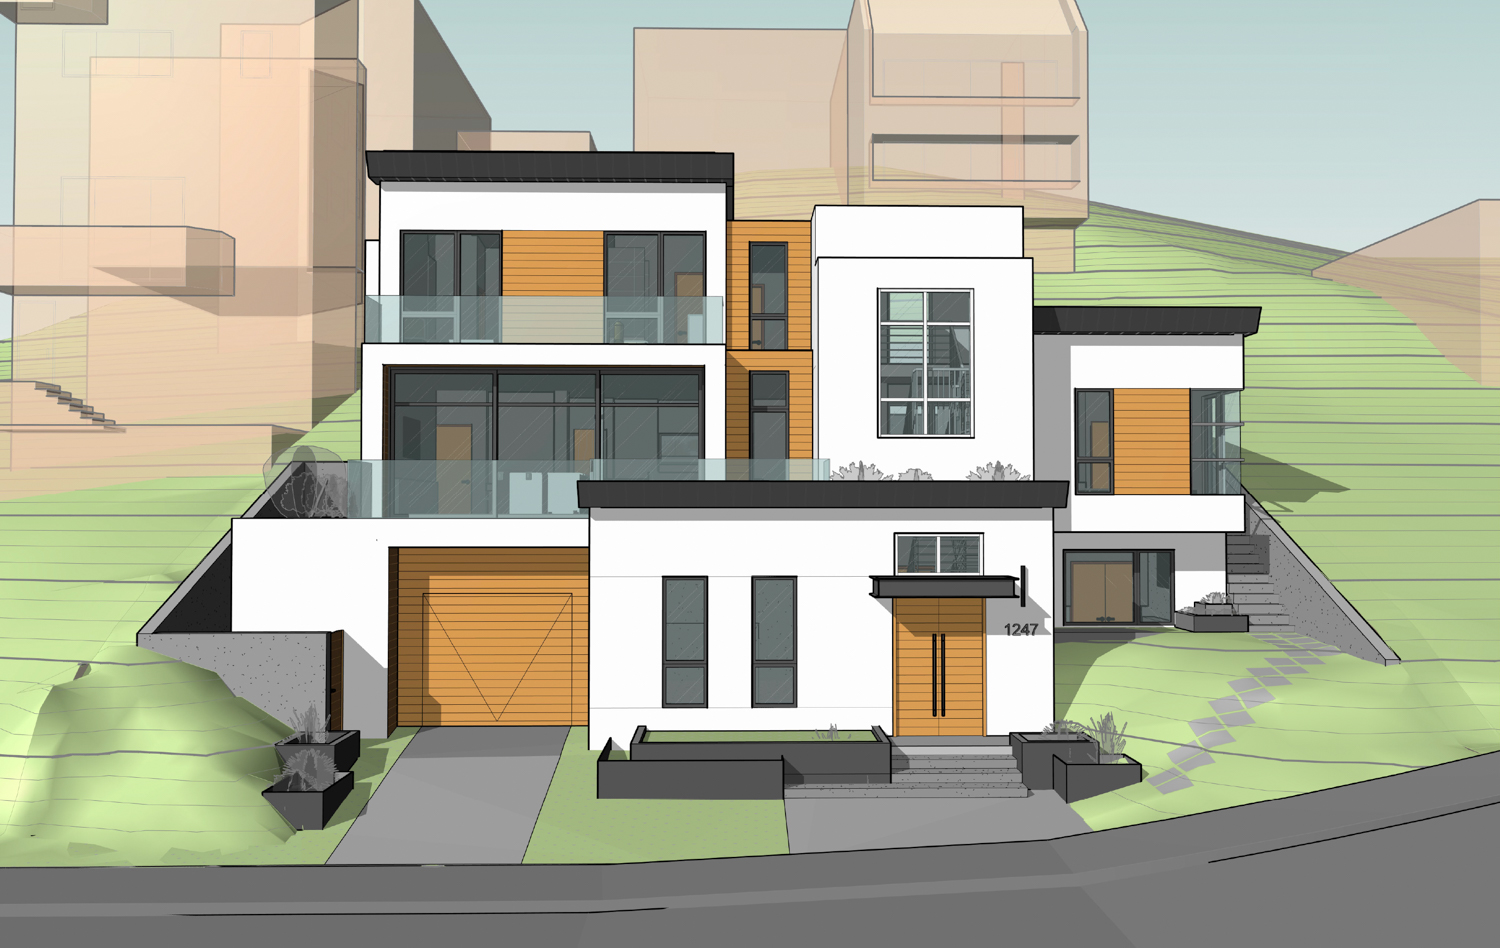 1247 Bosworth Street frontal view, rendering by Martinkovic Milford Architects